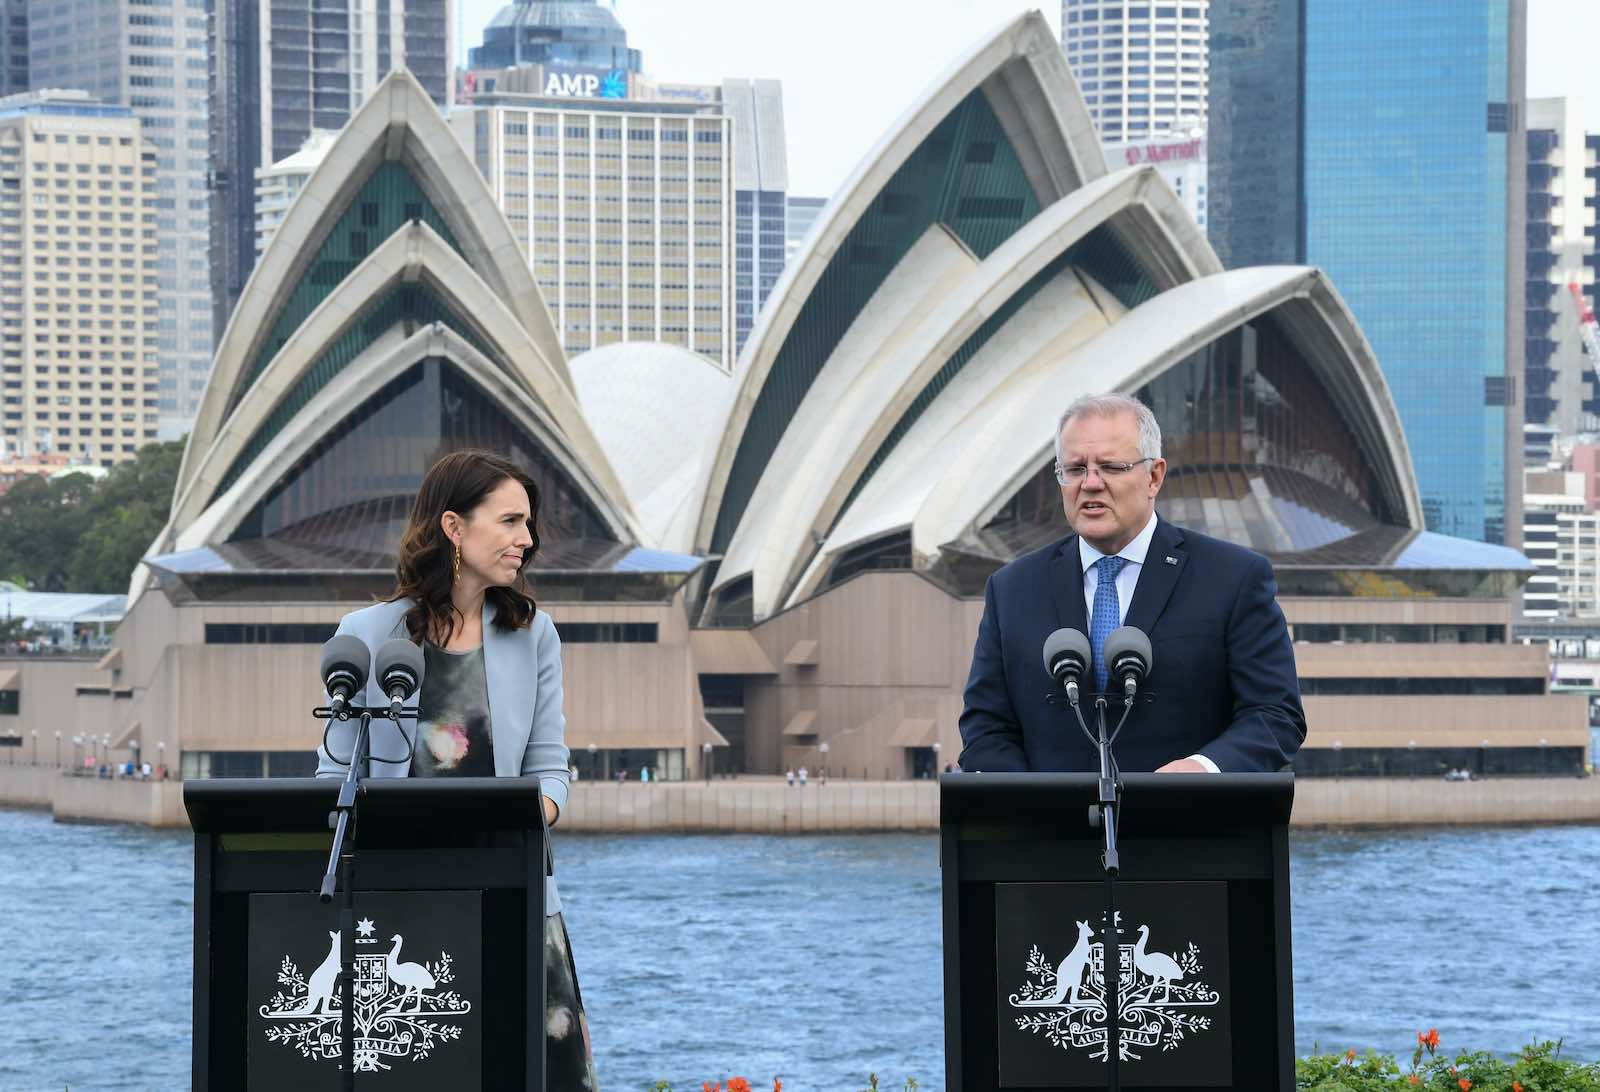 New Zealand Prime Minister Jacinda Ardern and Australian Prime Minster Scott Morrison during a February 2020 meeting in Sydney (James D. Morgan/Getty Images)